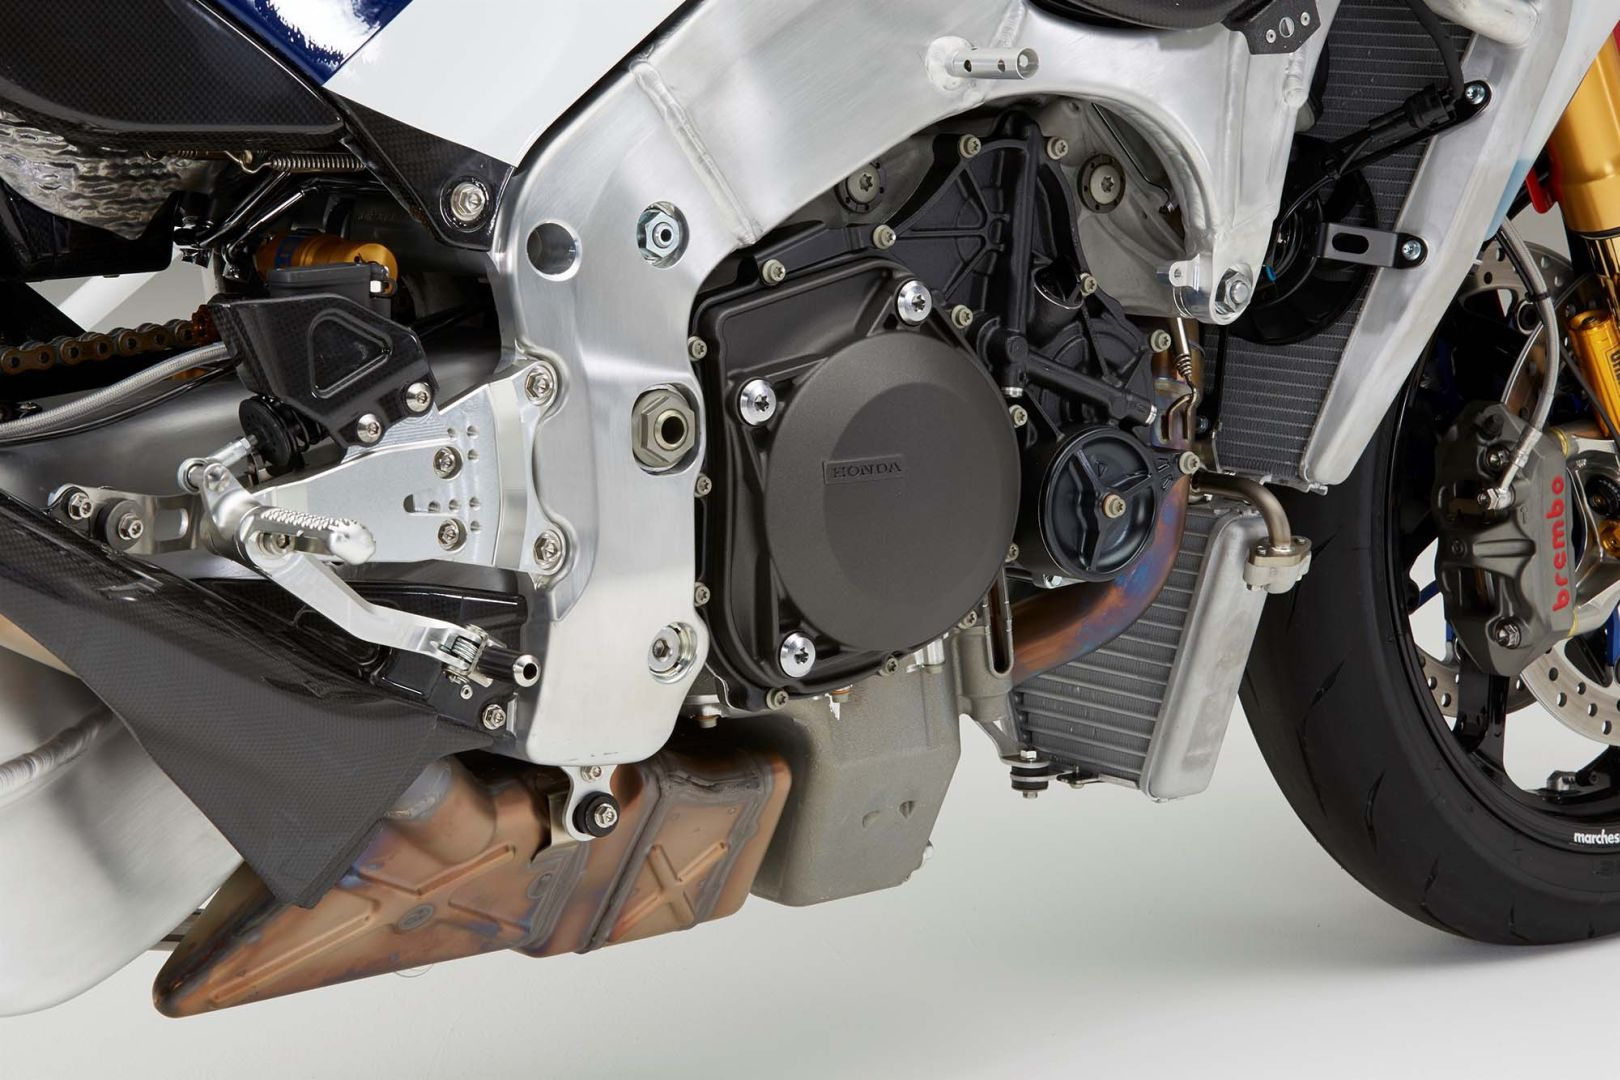 At 188 000 Honda Rc213v S Is Disappointing With 159 Hp In Stock Trim Autoevolution